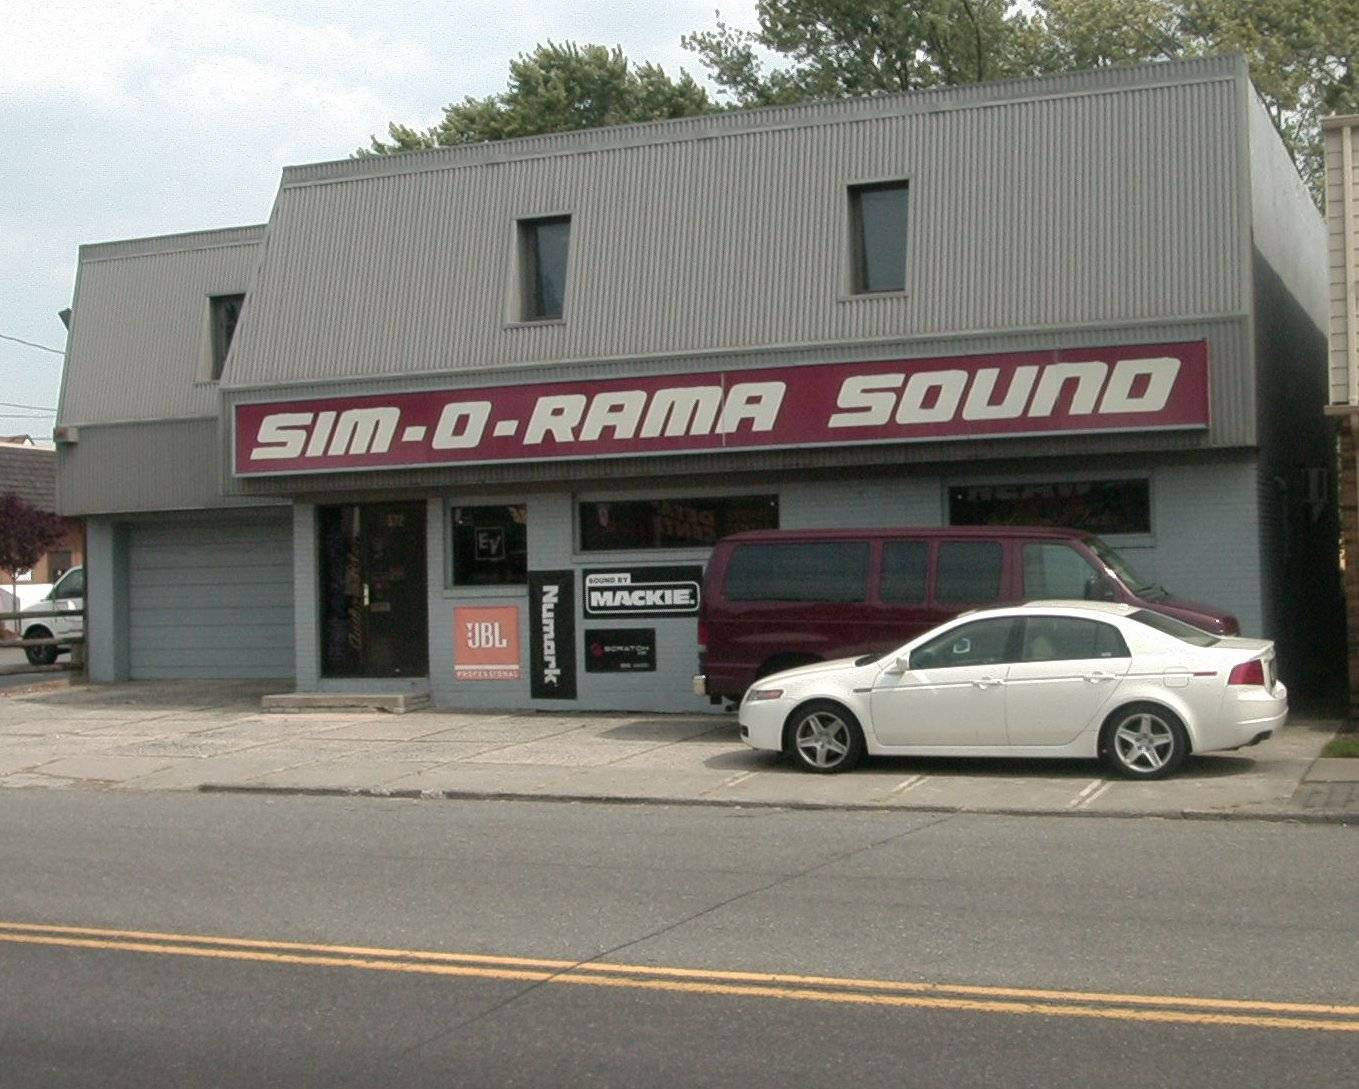 Sim-O-Rama Sound, 572 Union Blvd, Totowa, New Jersey, 07512, United States